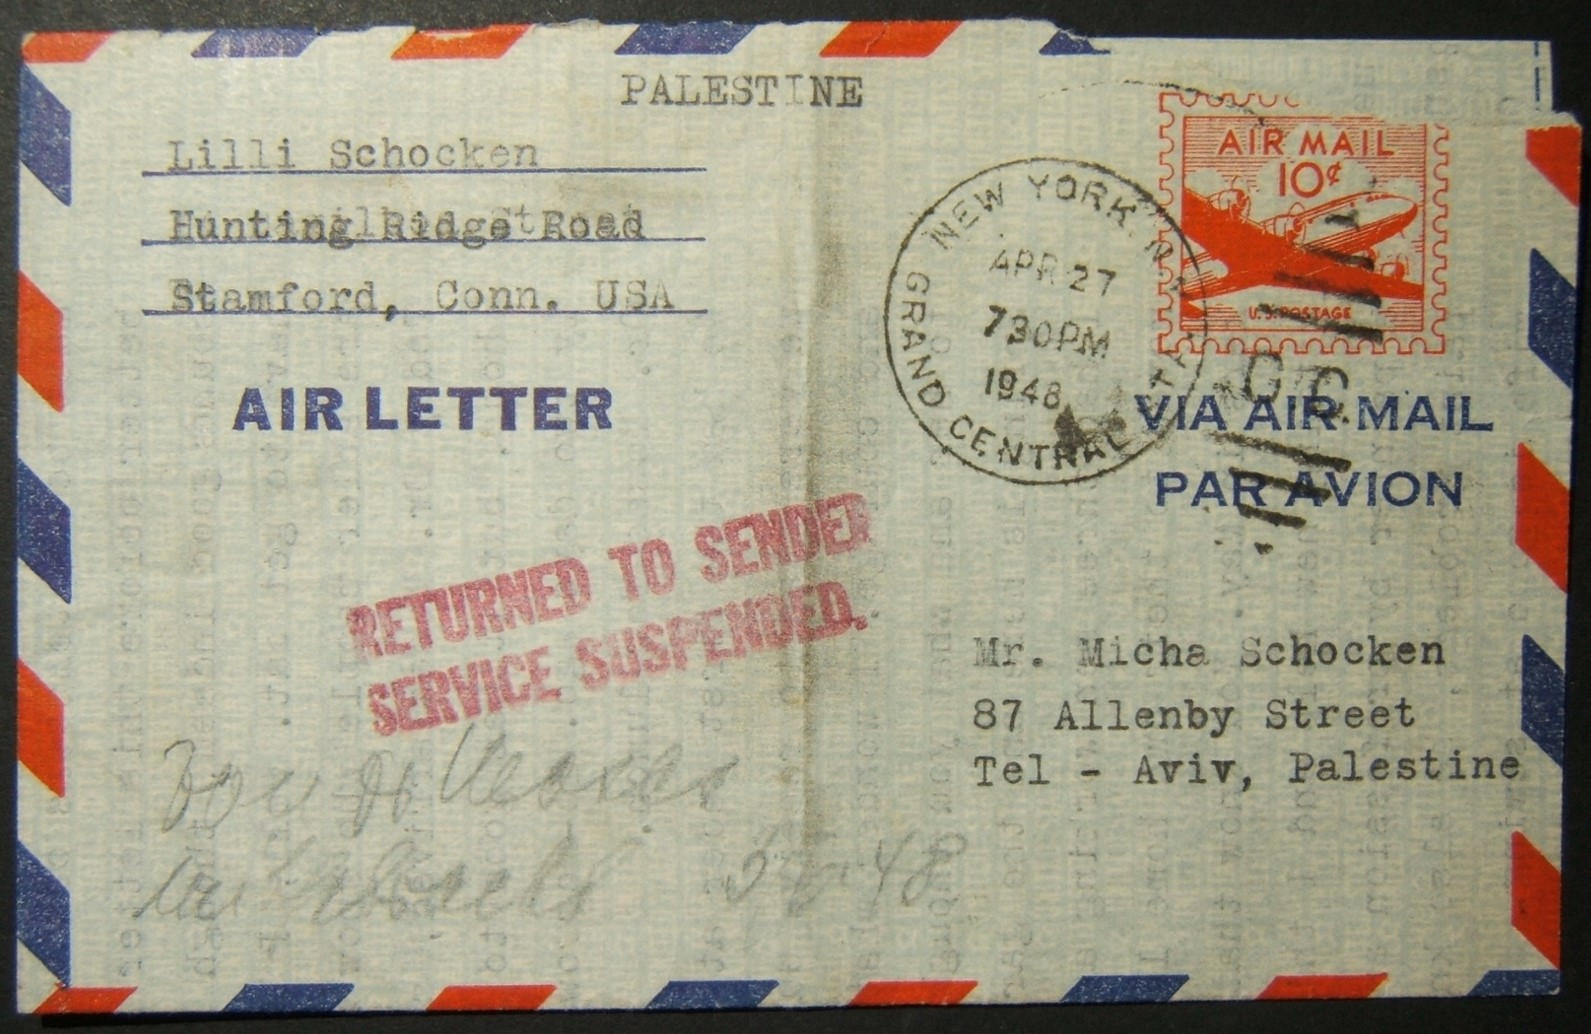 27-04-1948 earliest dated US airmail affected by postal suspension to Palestine